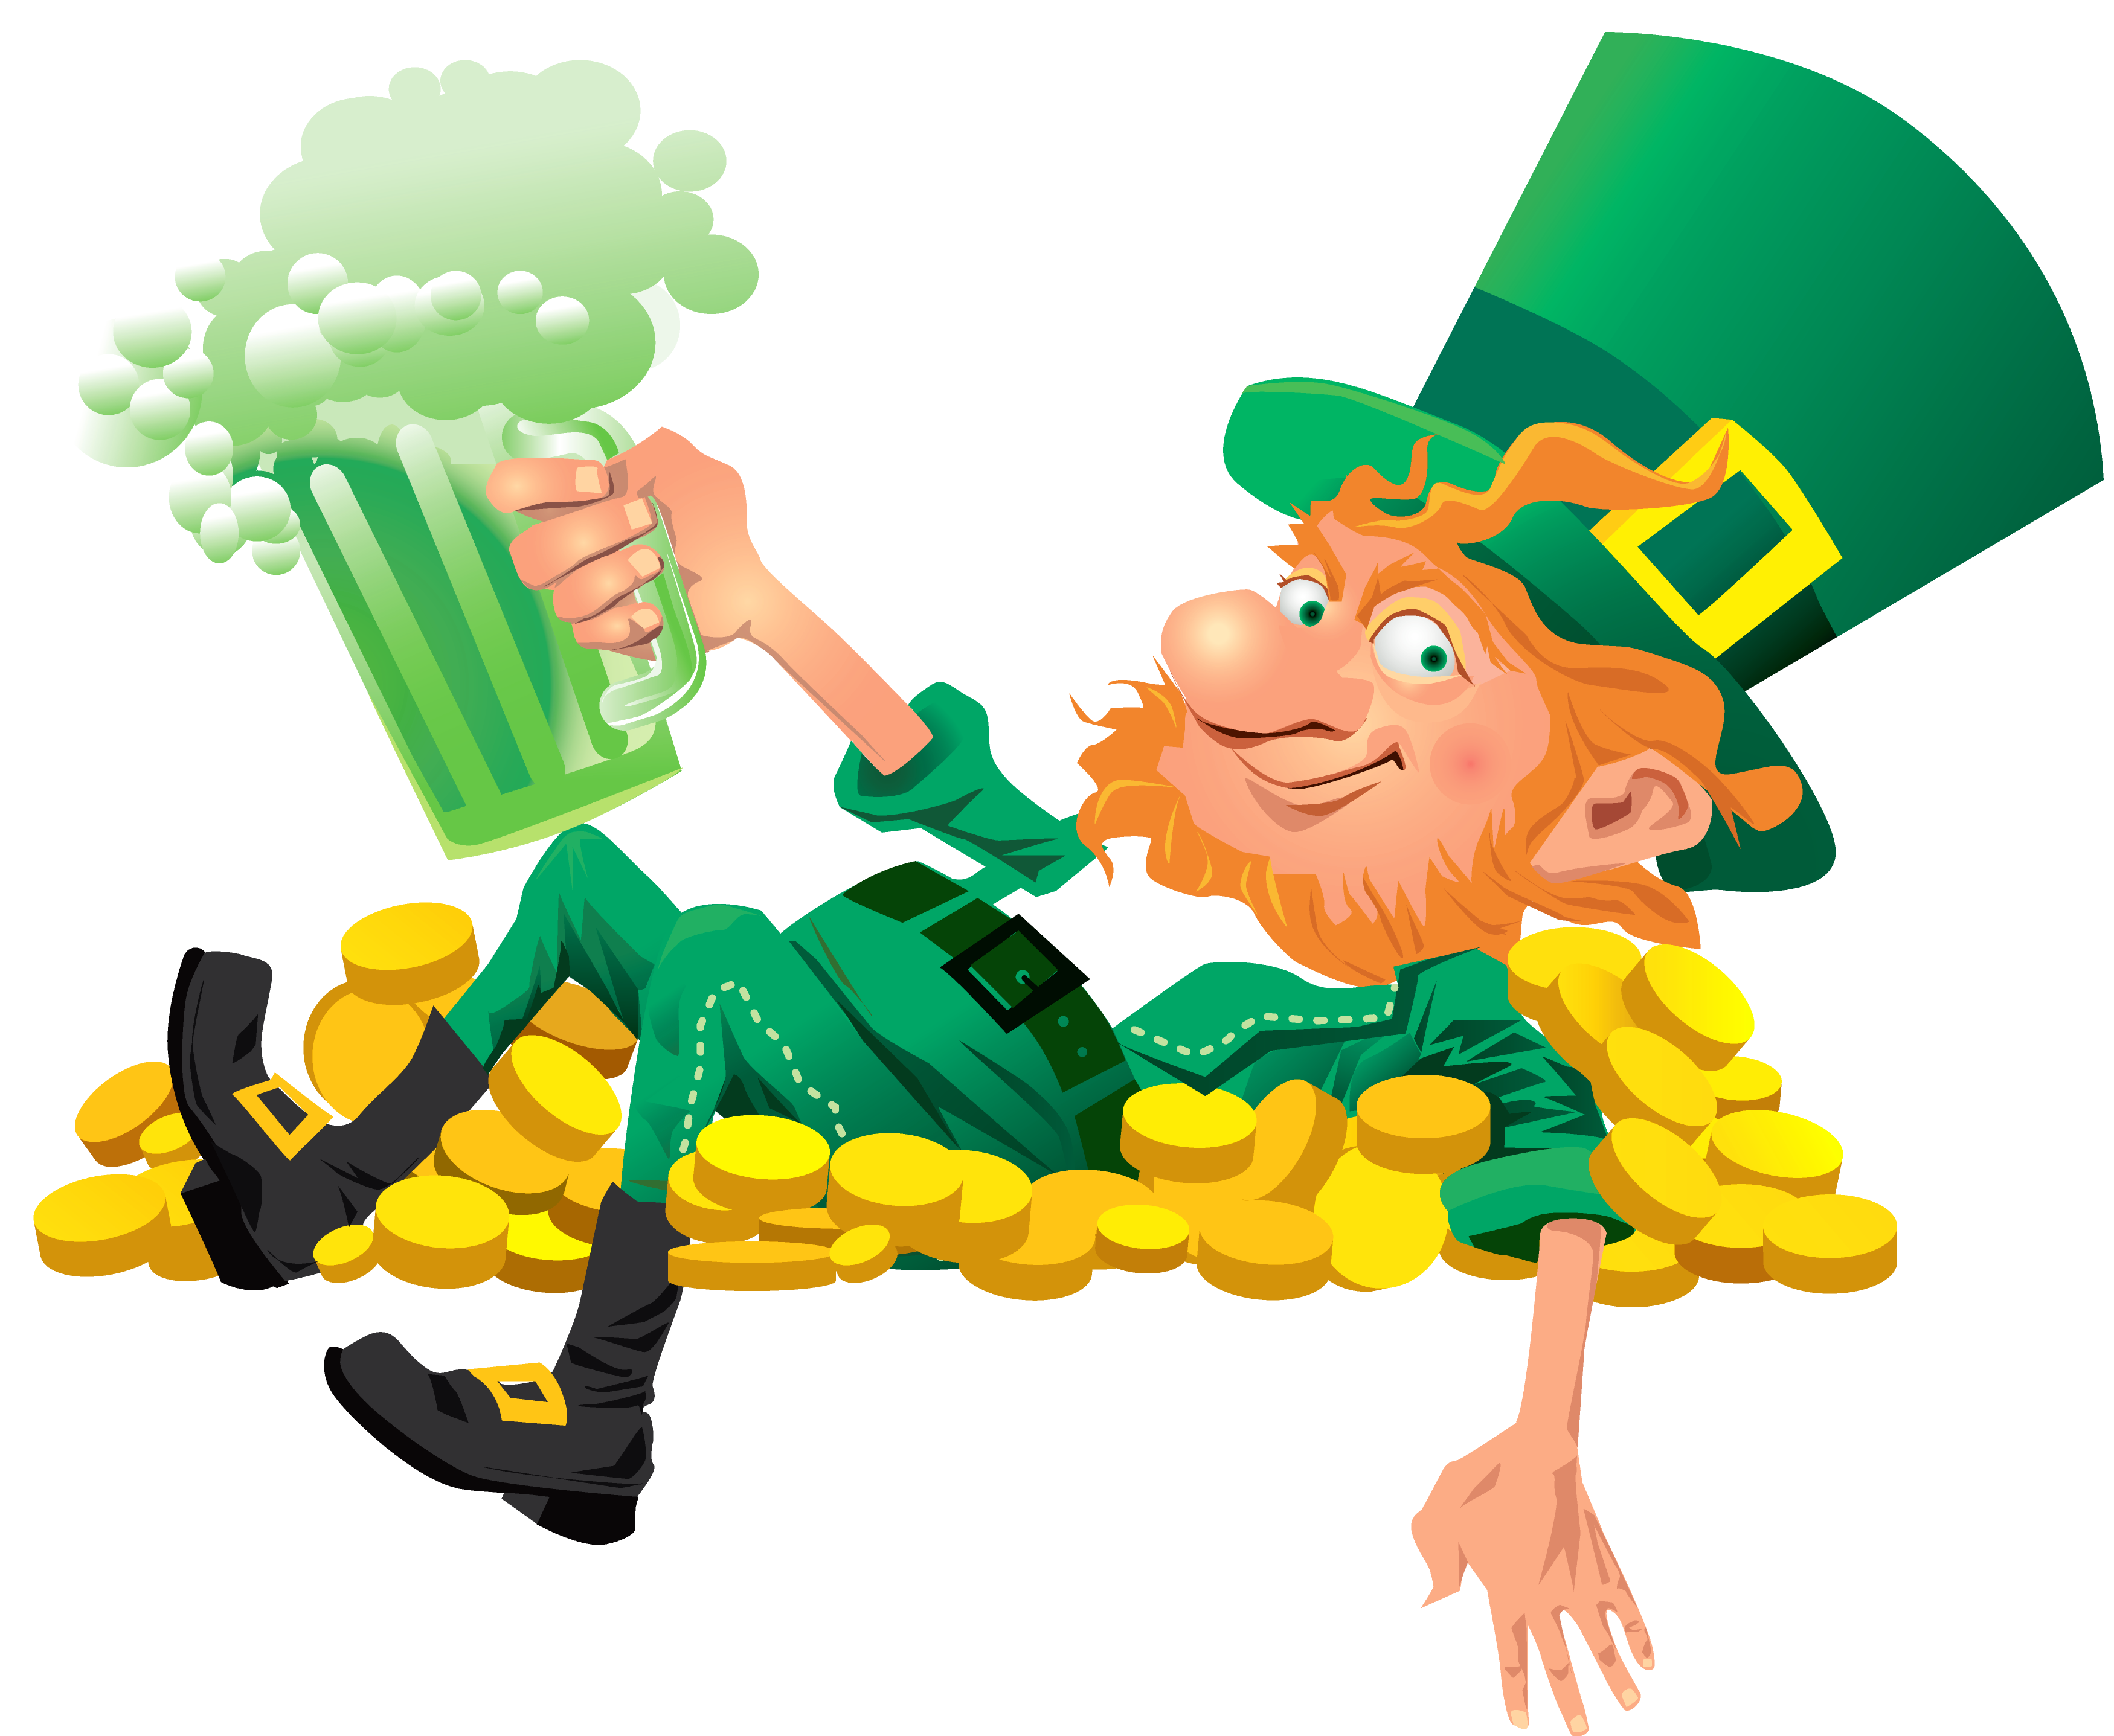 Leprechaun clipart famous. St patricks day thoughts